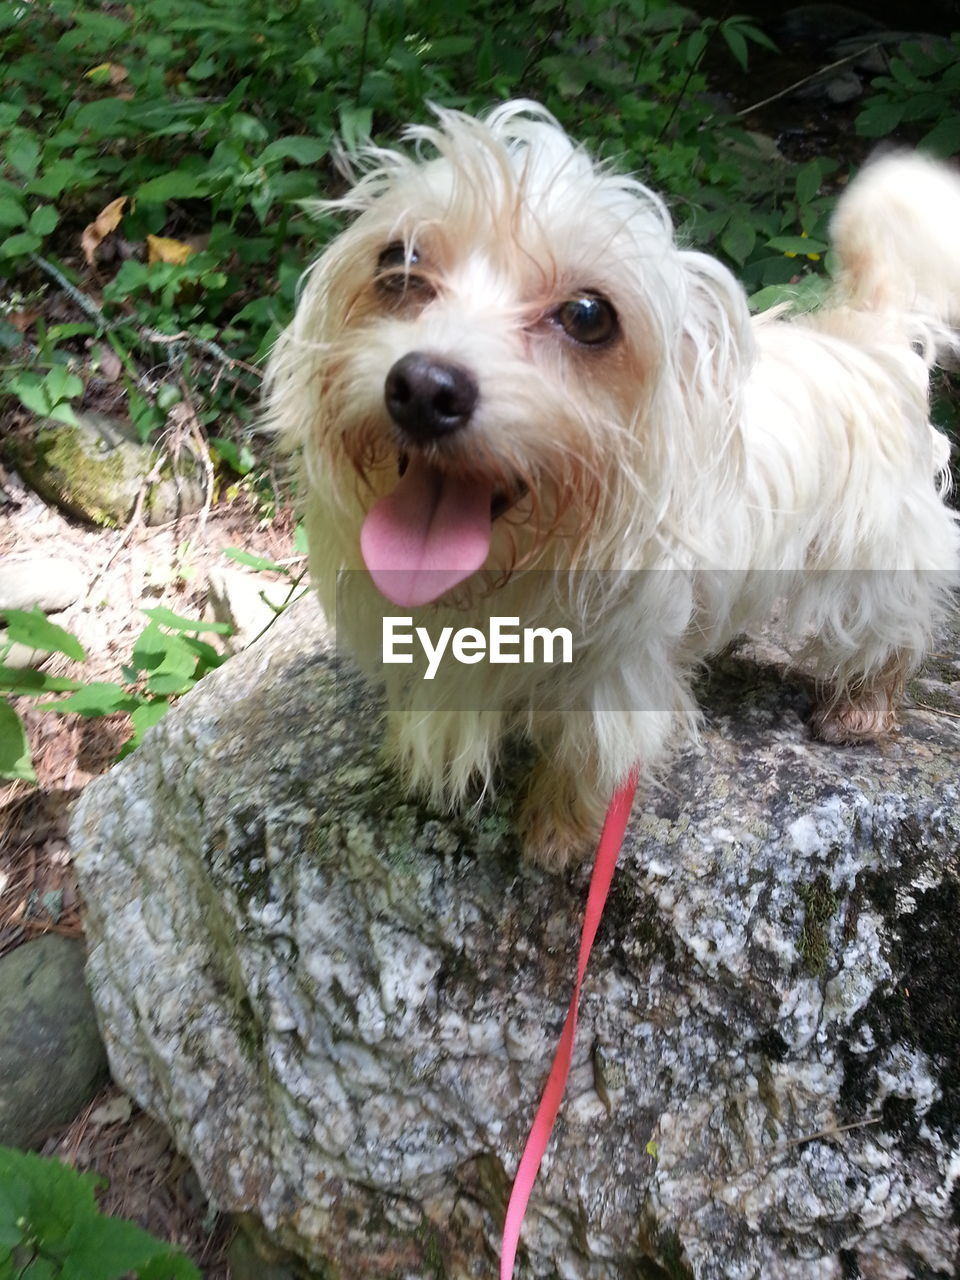 canine, dog, one animal, domestic, pets, animal, mammal, animal themes, domestic animals, vertebrate, day, animal hair, no people, hair, portrait, nature, close-up, sticking out tongue, rock, looking at camera, outdoors, mouth open